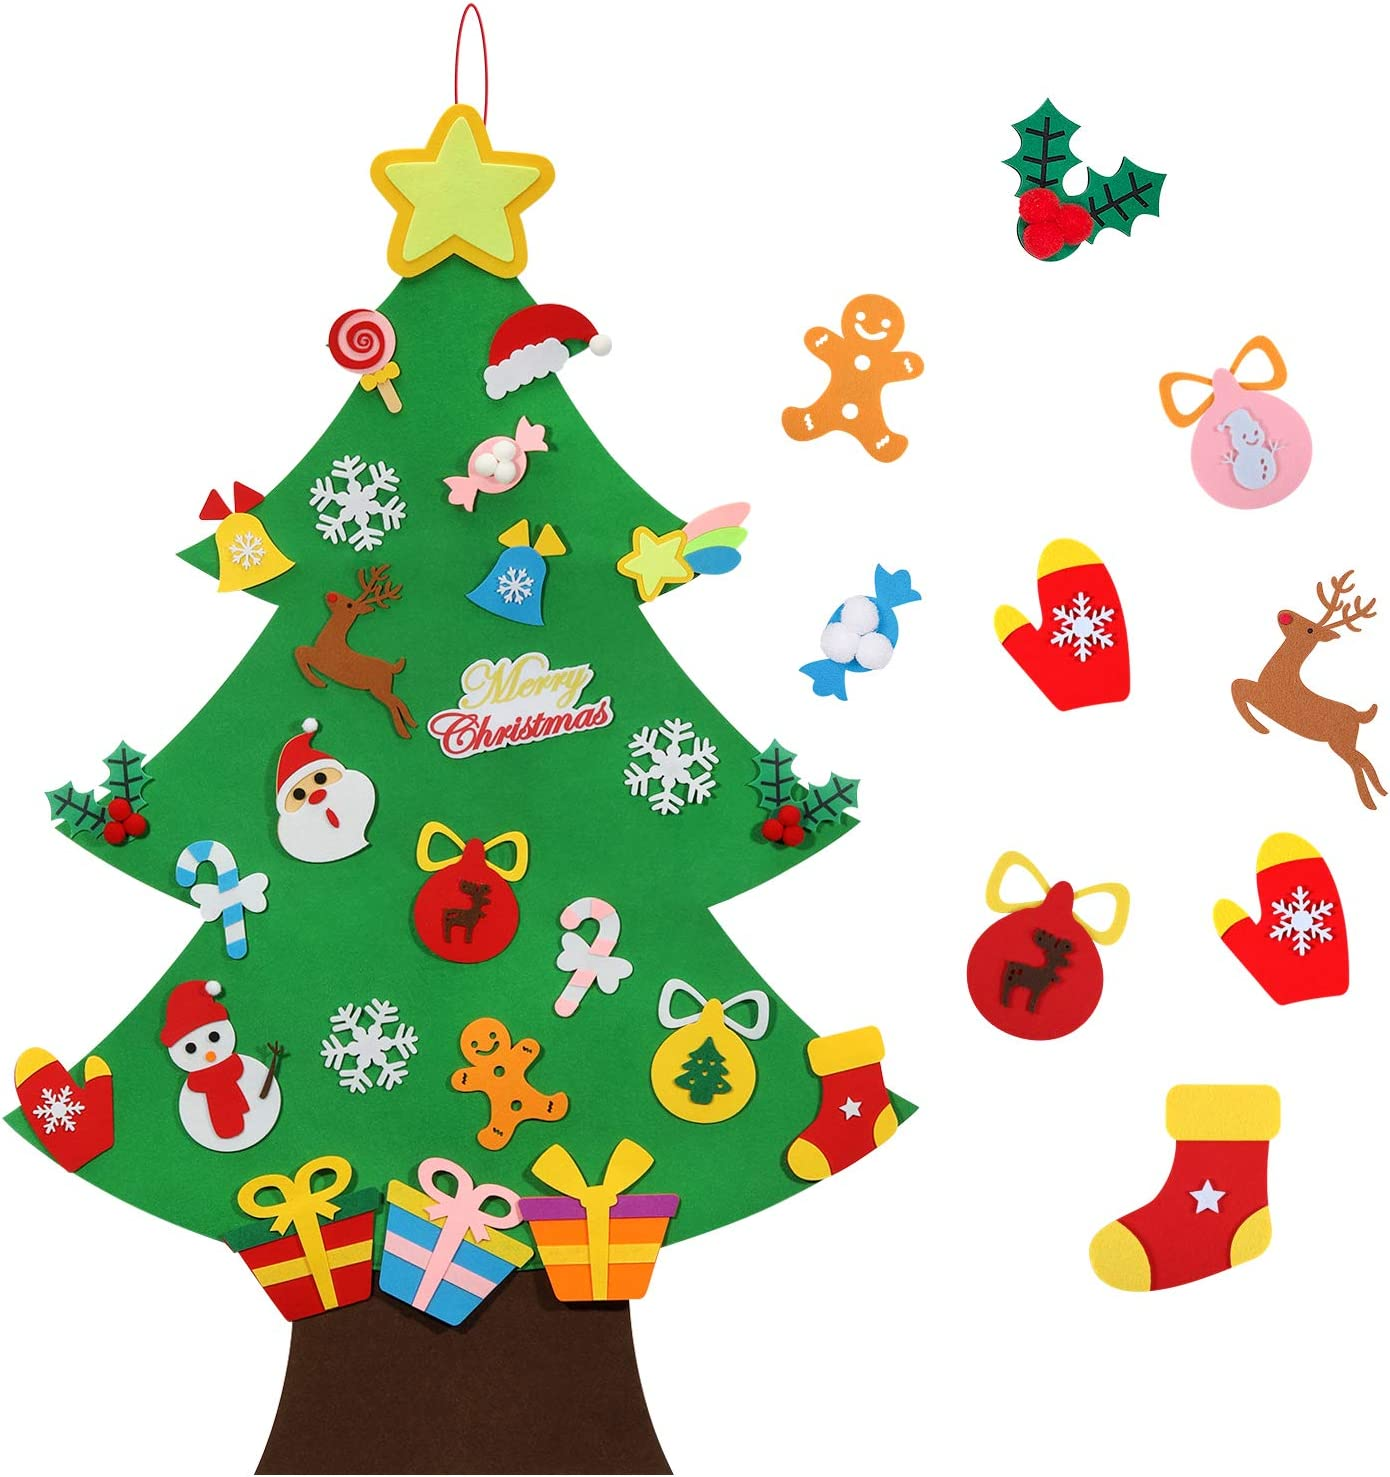 Wall Hanging Christmas Tree Decorations TOBEHIGHER Felt Christmas Tree 3.6 FT 3D DIY Set for Kids with 33 Pieces of Ornament Decor